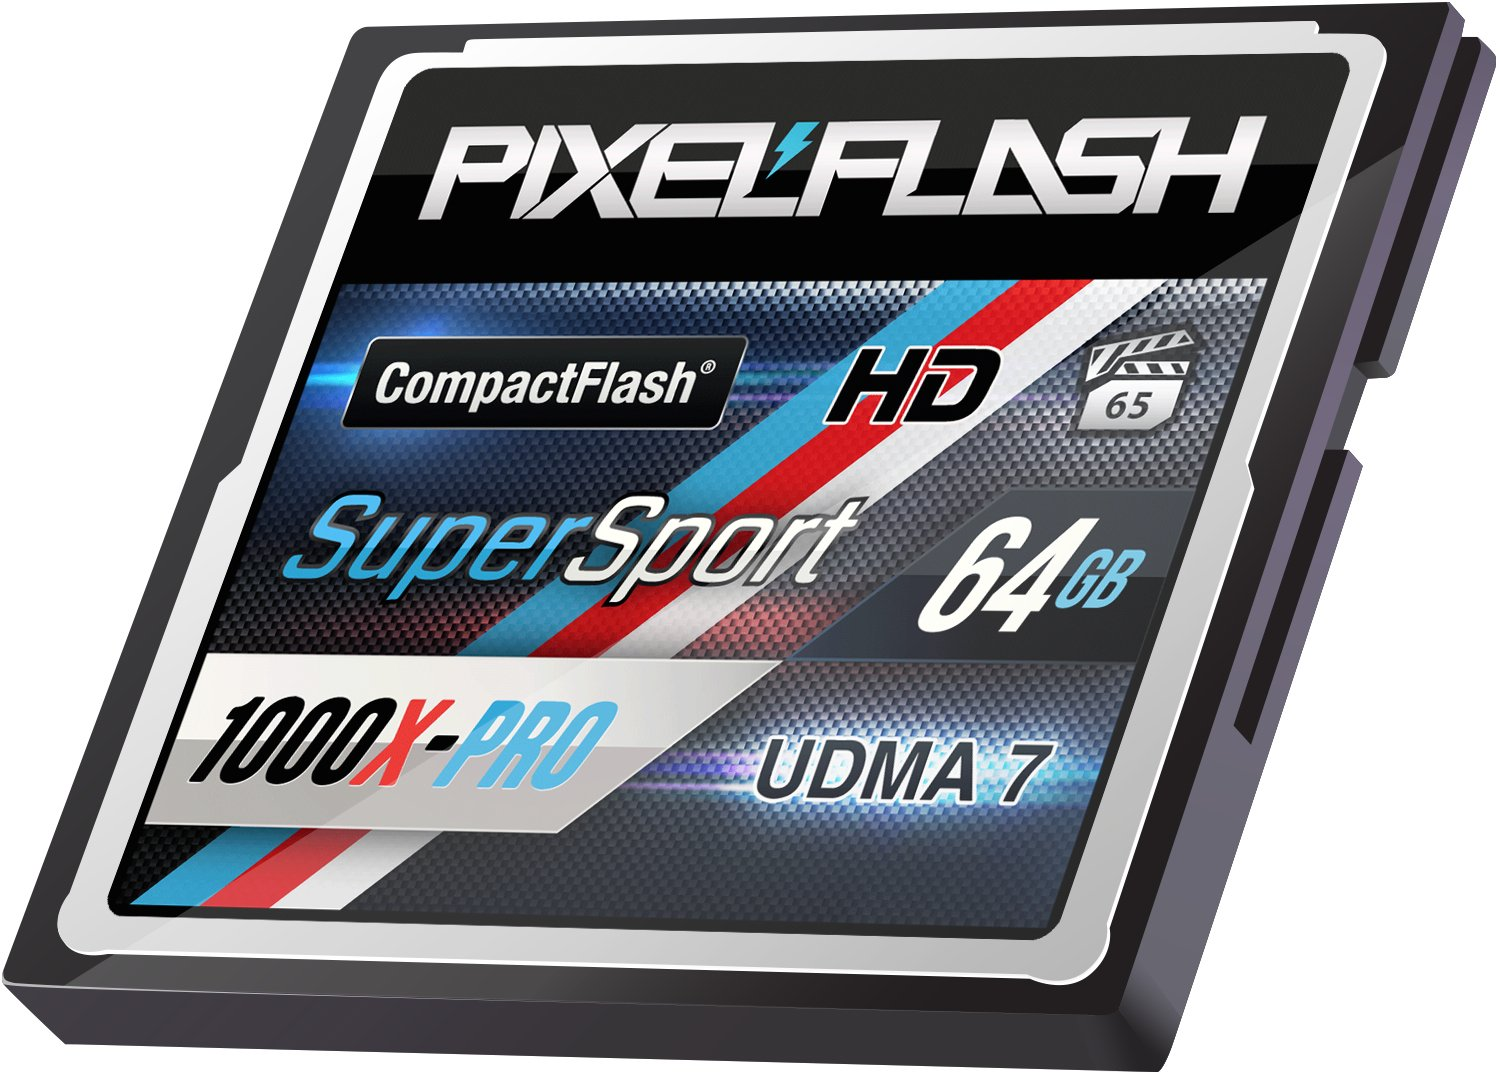 PixelFlash 64 GB SuperSport CompactFlash Memory Card 1106X Pro Fast Transfer Speeds up to 167MB/s for Photo and Video Storage